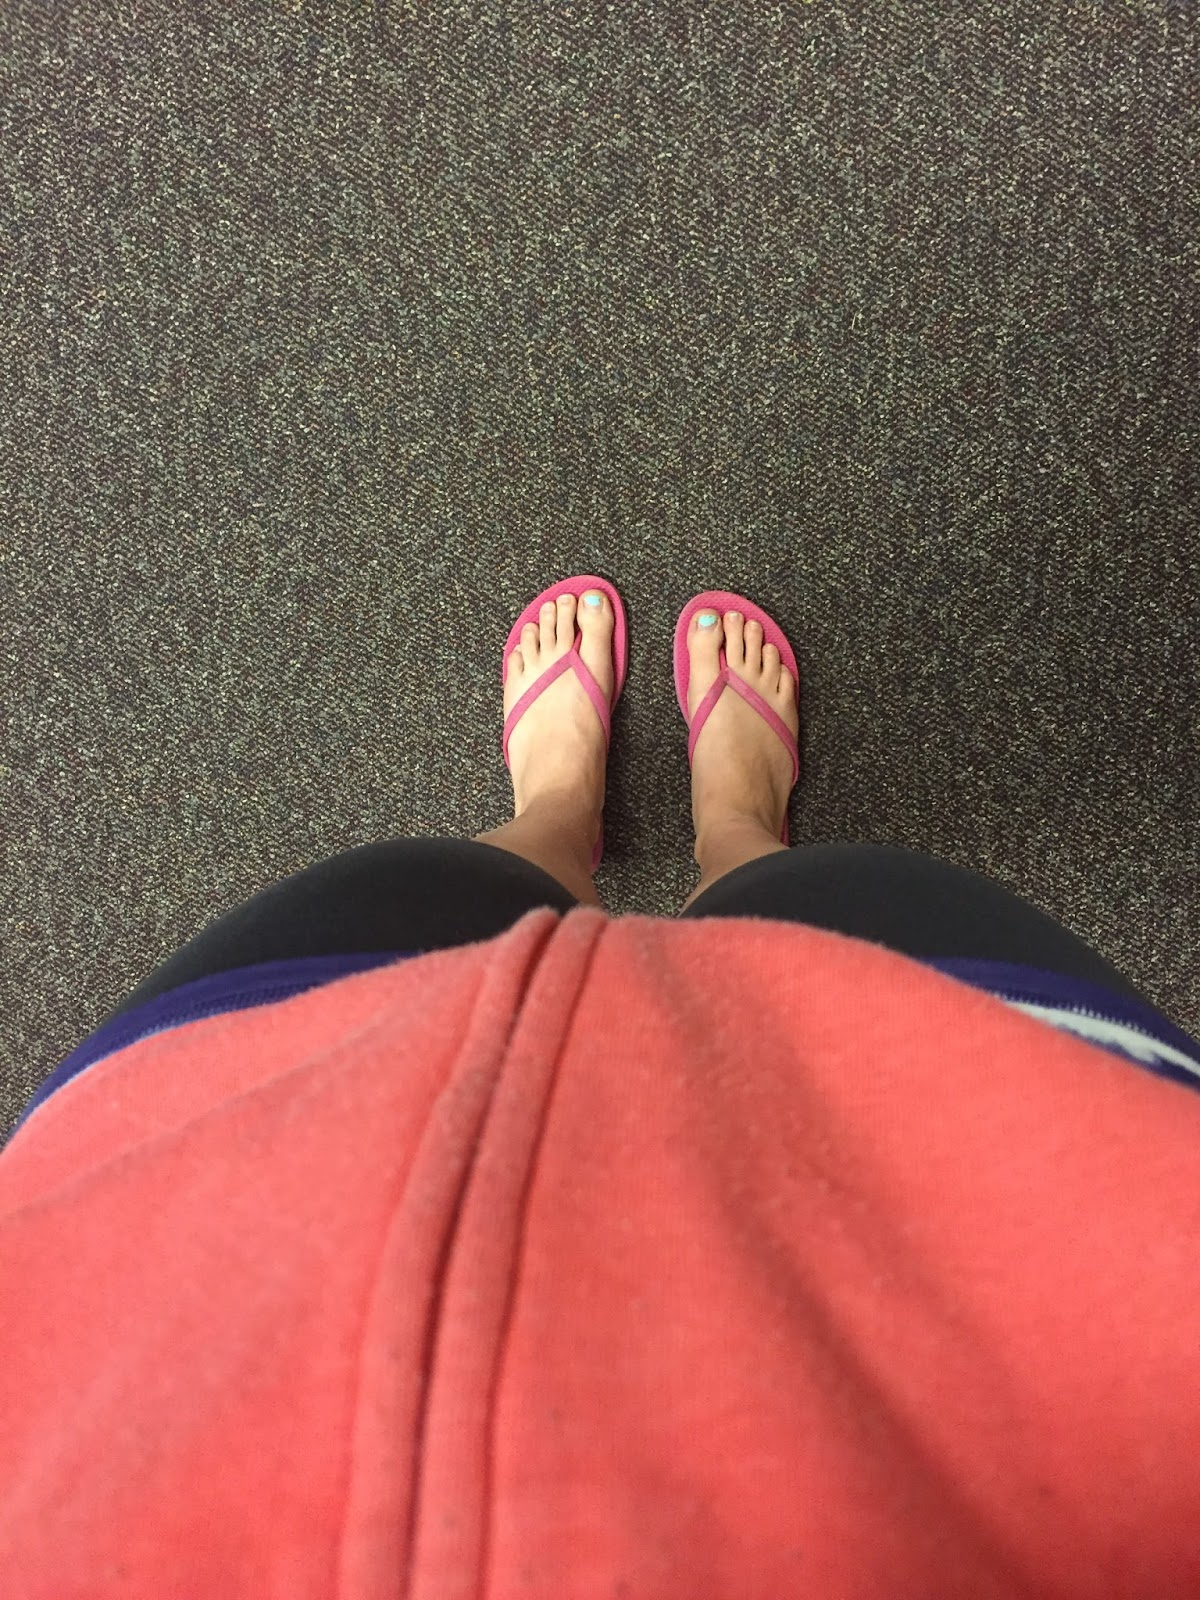 picture of my feet after a piyo workout. dopey challenge training